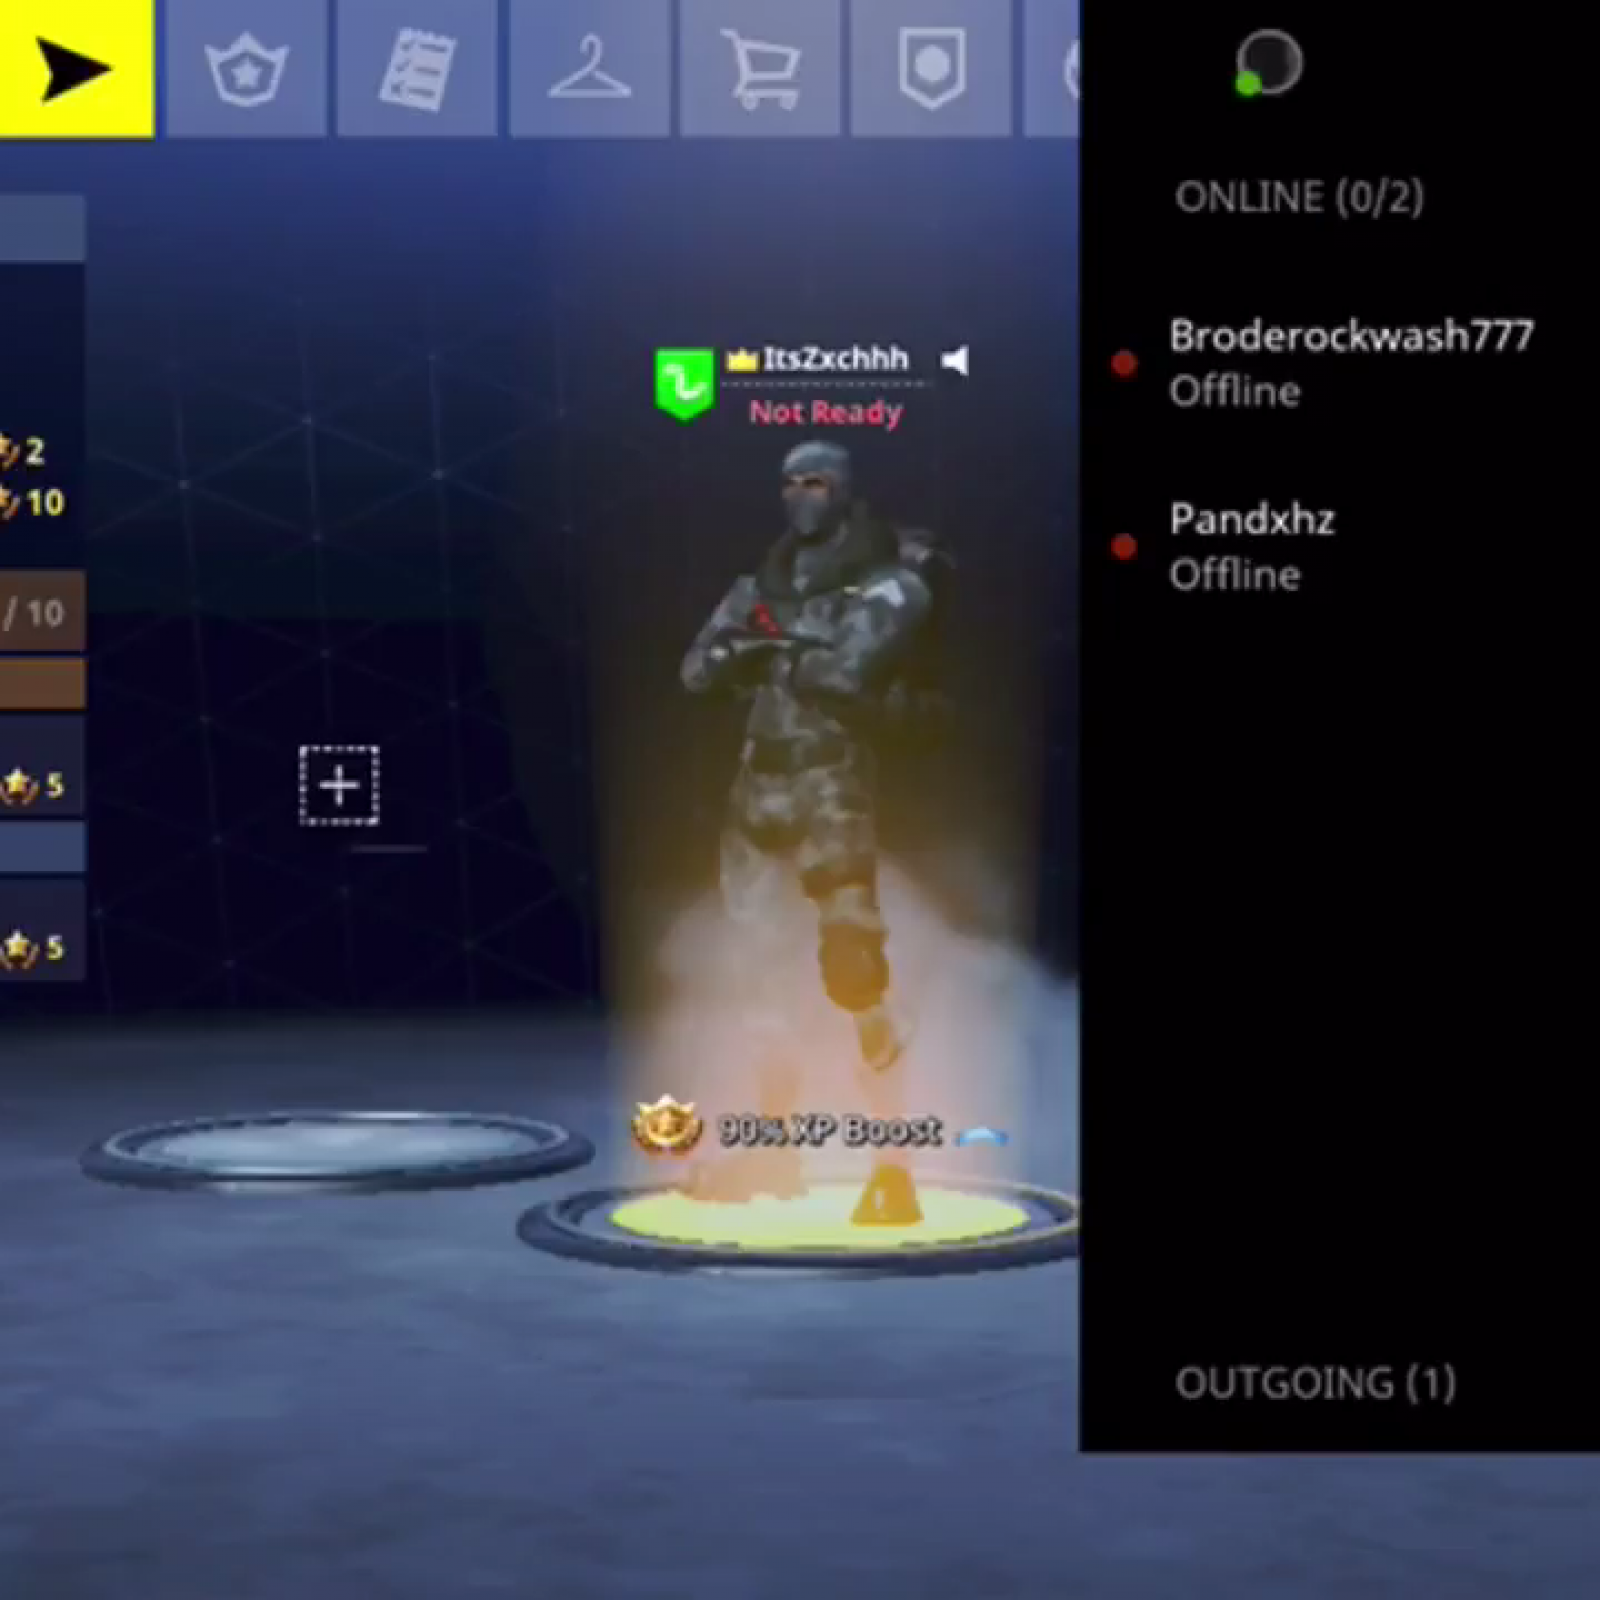 Fortnite' Crossplay: How to Enable Switch, PS4, XBox, PC and Mobile